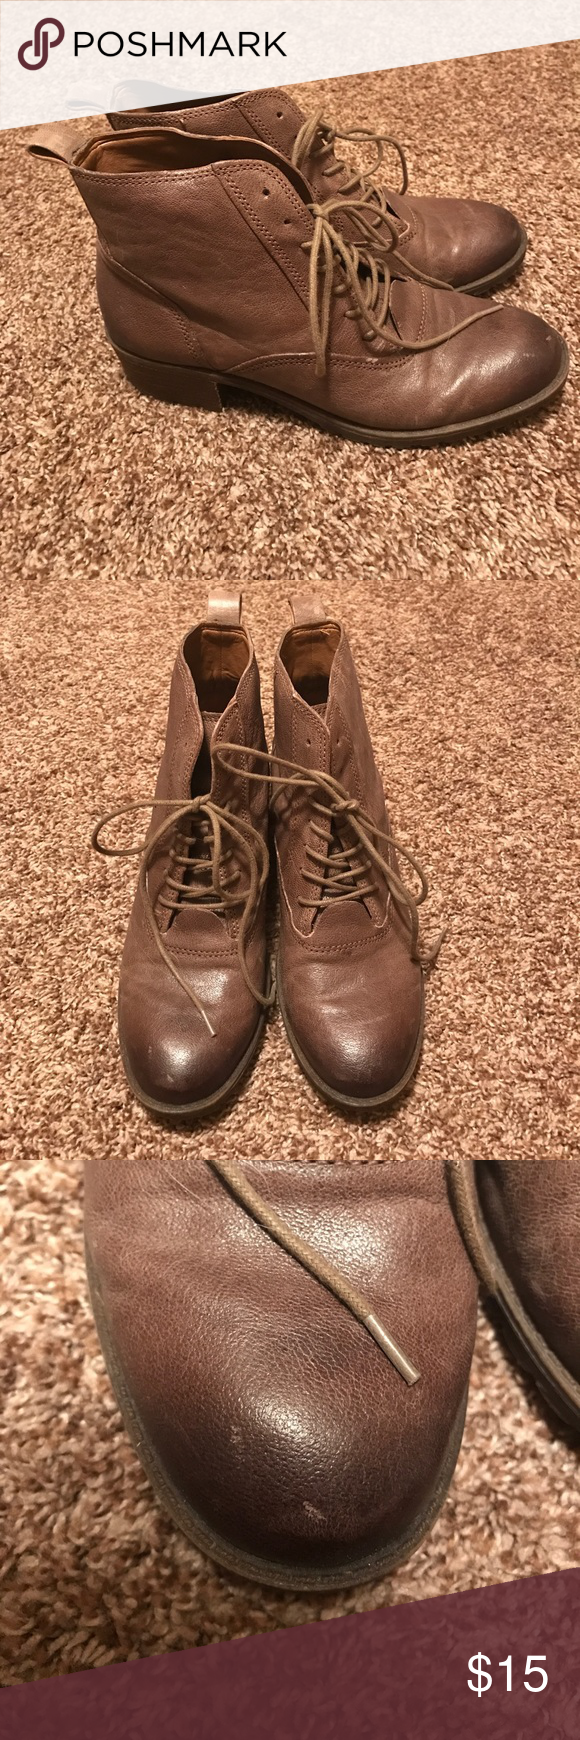 Lucky Brand Combat Boots Never worn. Bought from TJ Maxx. A few scratches as shown in photos that were there when I bought them. Lucky Brand Shoes Combat & Moto Boots